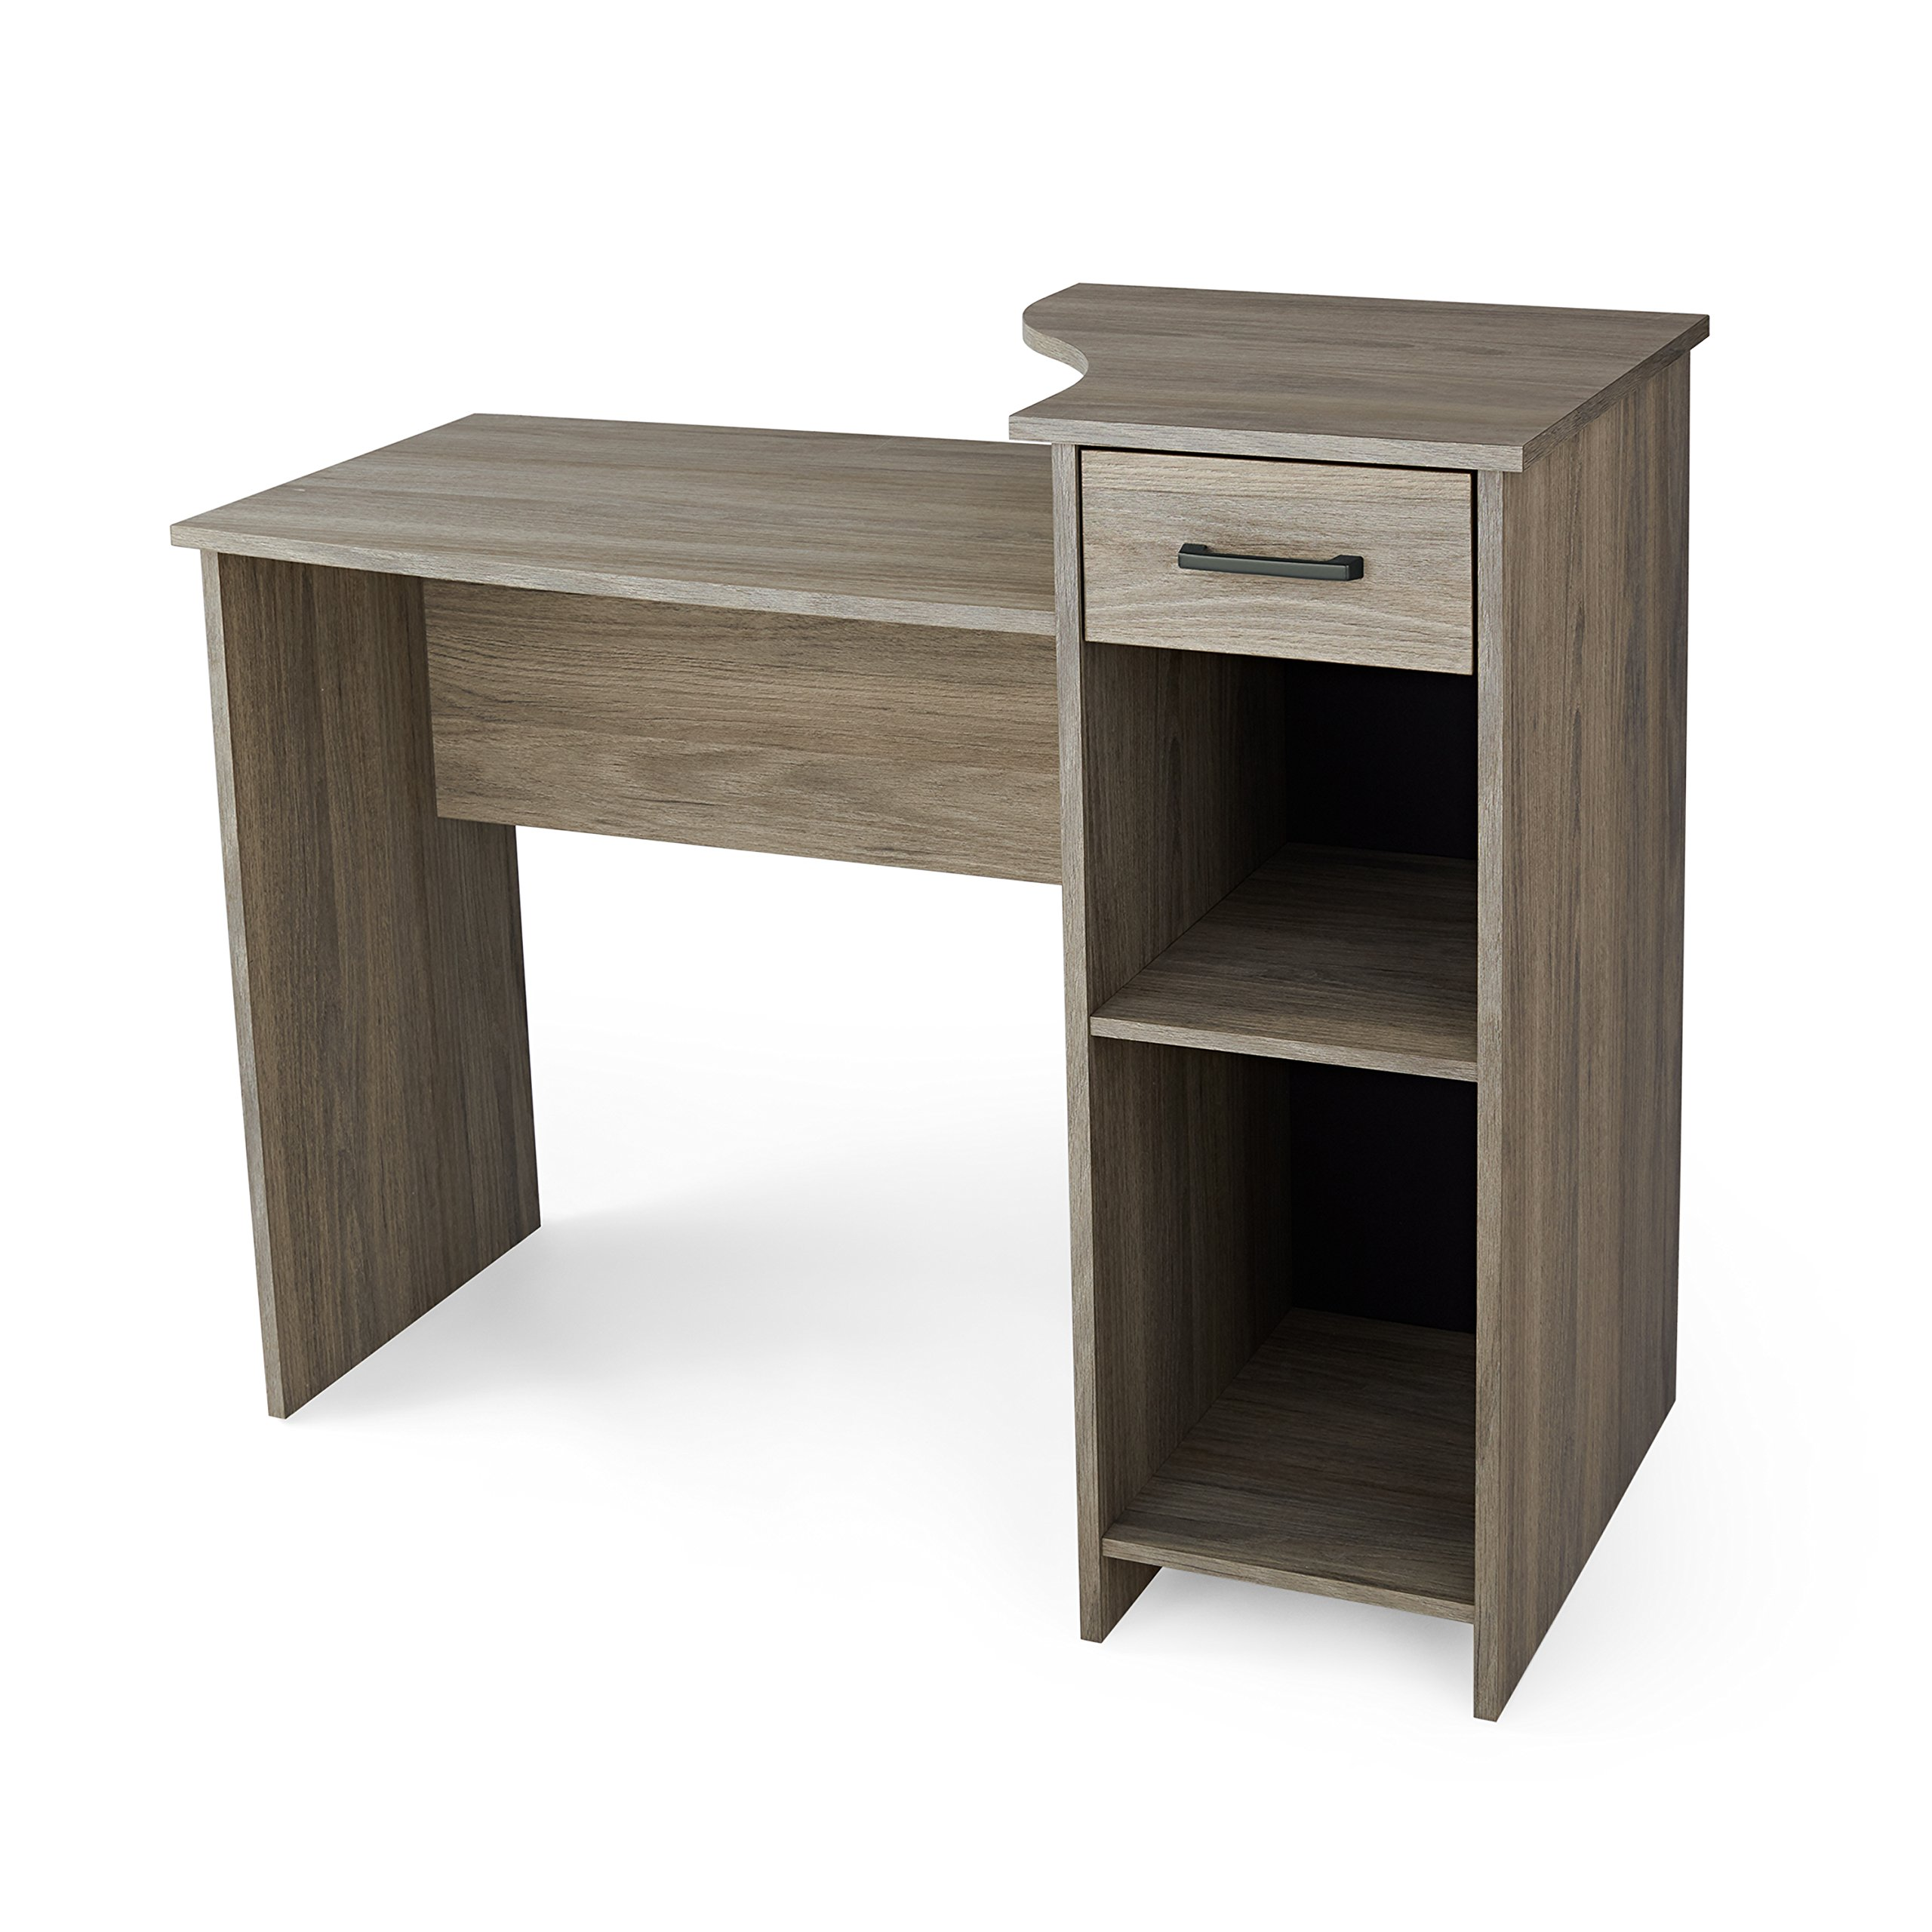 Mainstays Engineered Wood Student Desk with Adjustable Storage Shelf & Drawer in Rustic Oak Finish